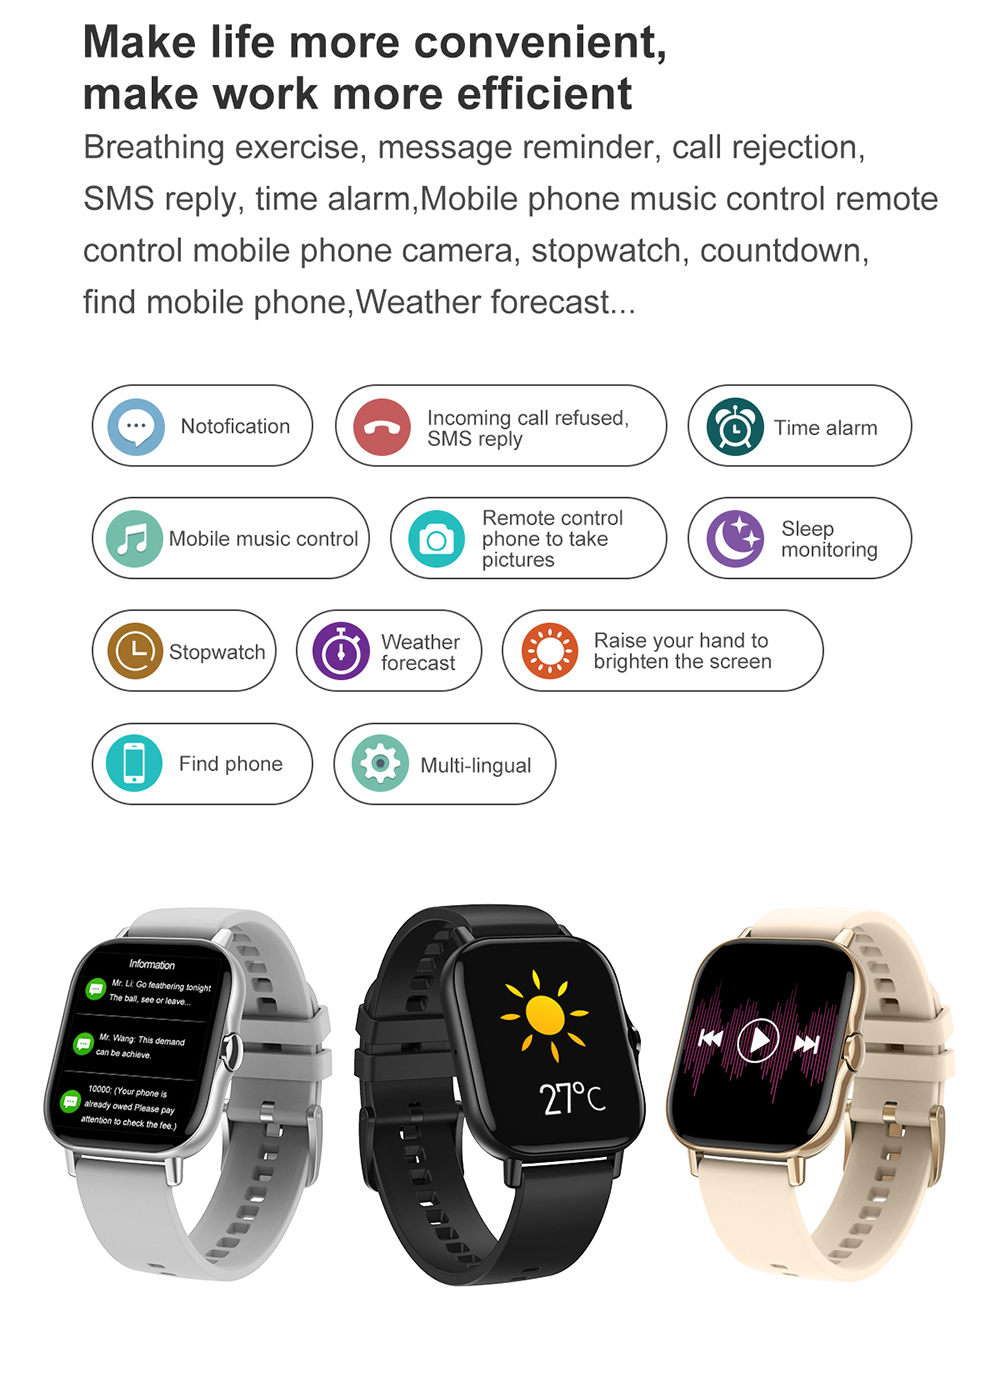 He2602cef7c40430f917d65a310979a7fC For Xiaomi IOS Apple Phone 1.78inch Smart Watch Android Men IP68 Waterproof Full Touch Woman Smartwatch Women 2021 Answer Call